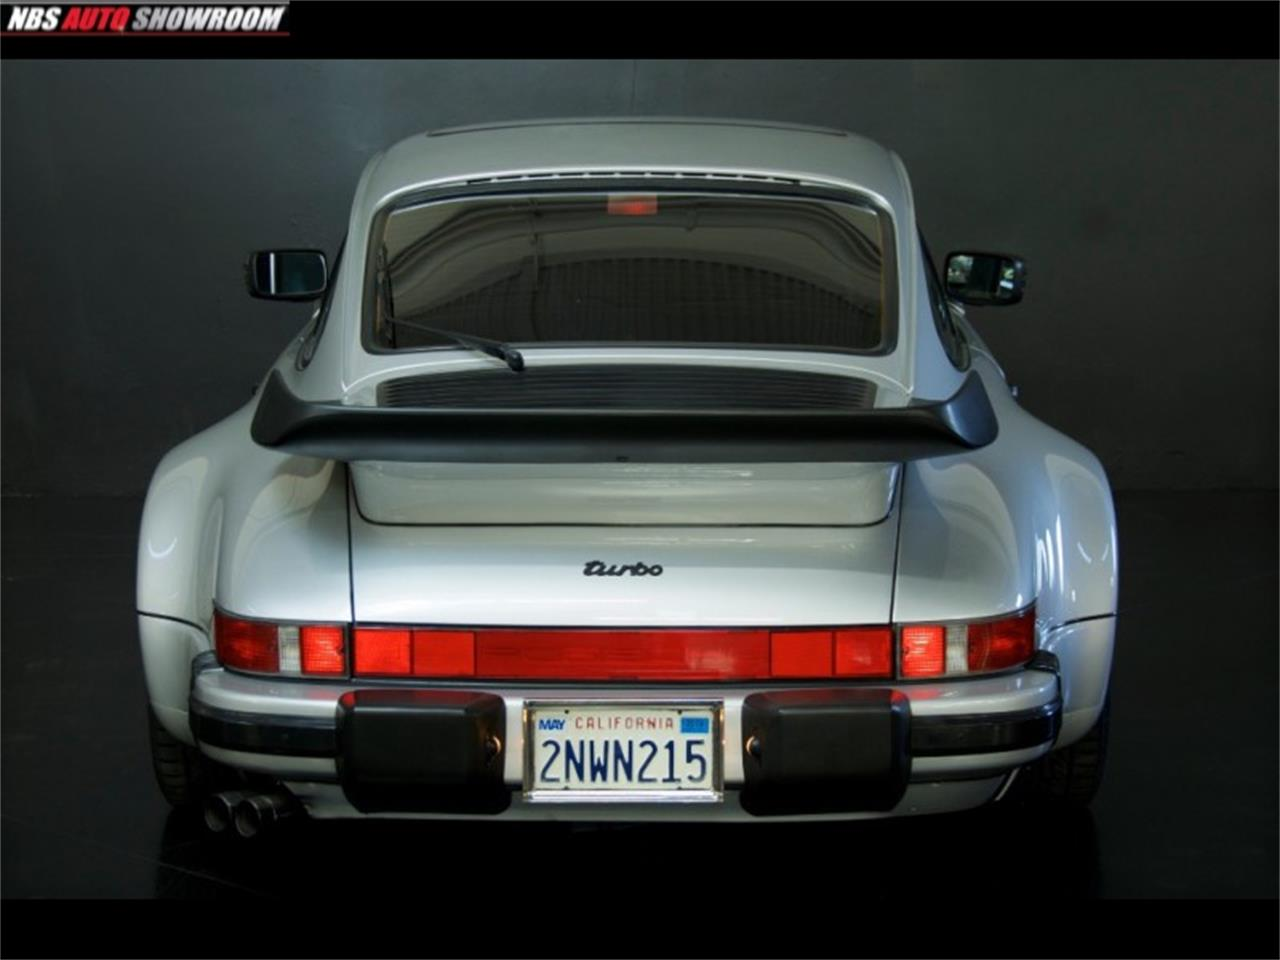 Large Picture of '89 911 Offered by NBS Auto Showroom - Q9VO